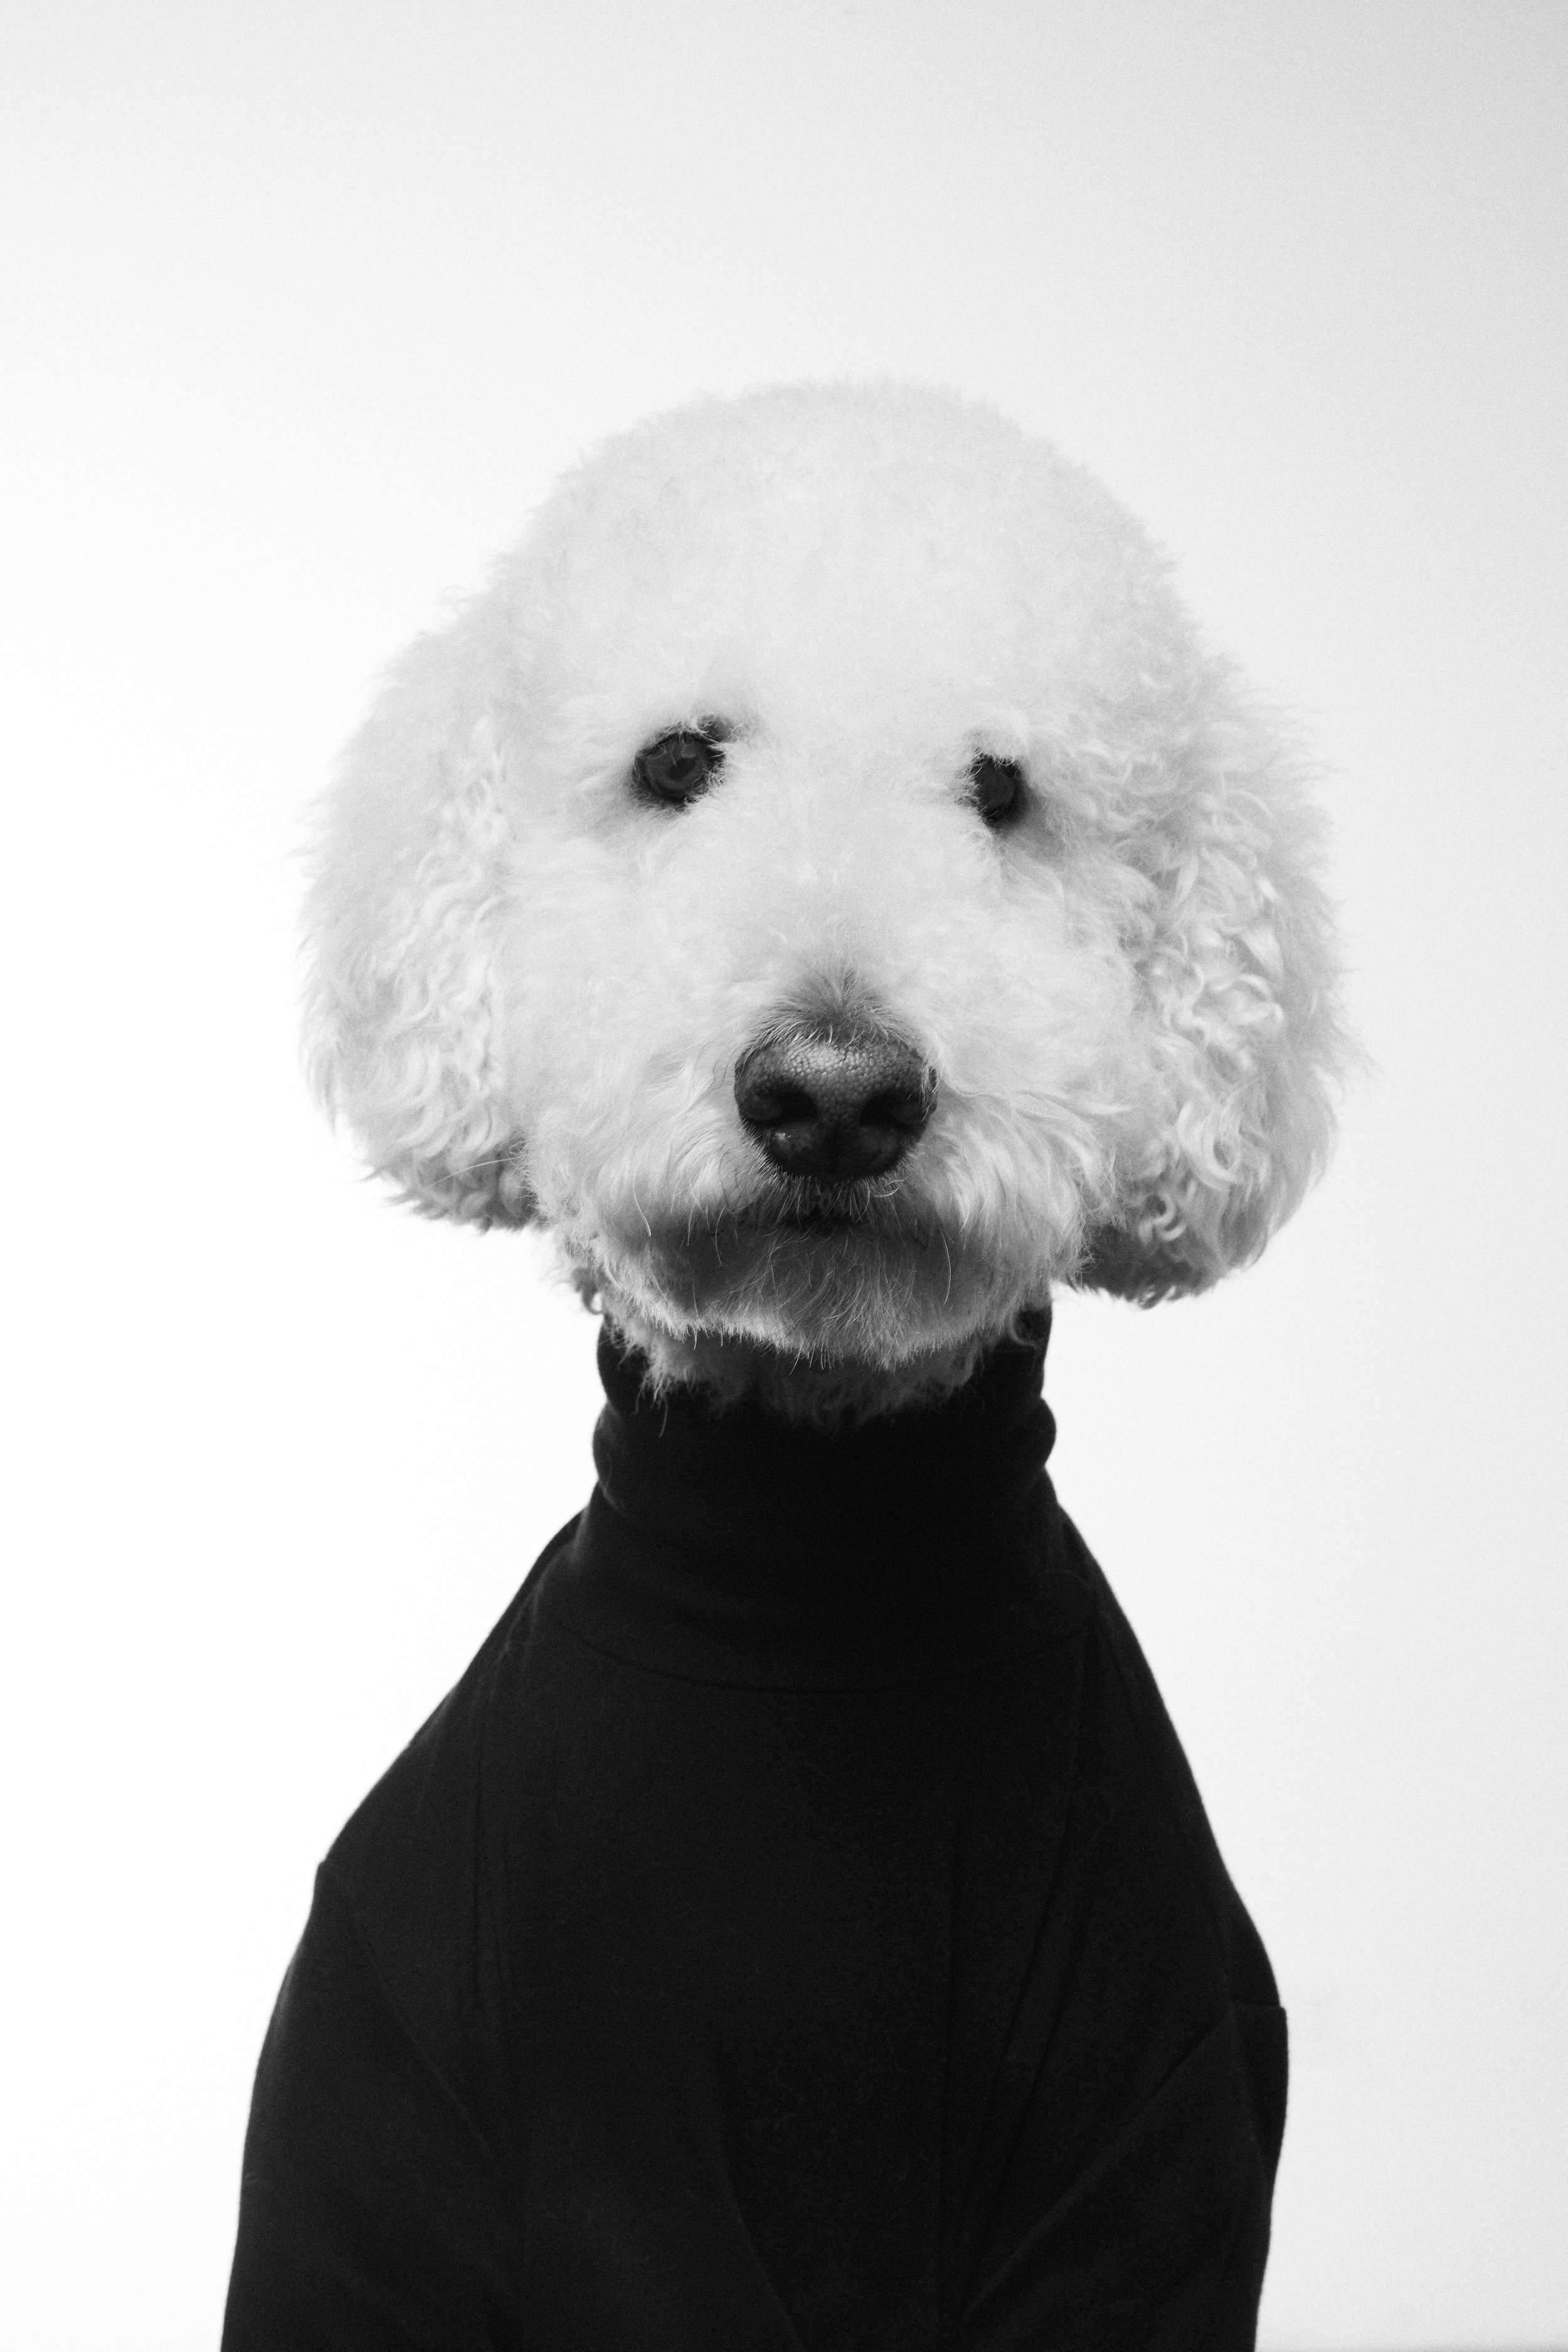 German the Poodle Portrait 1